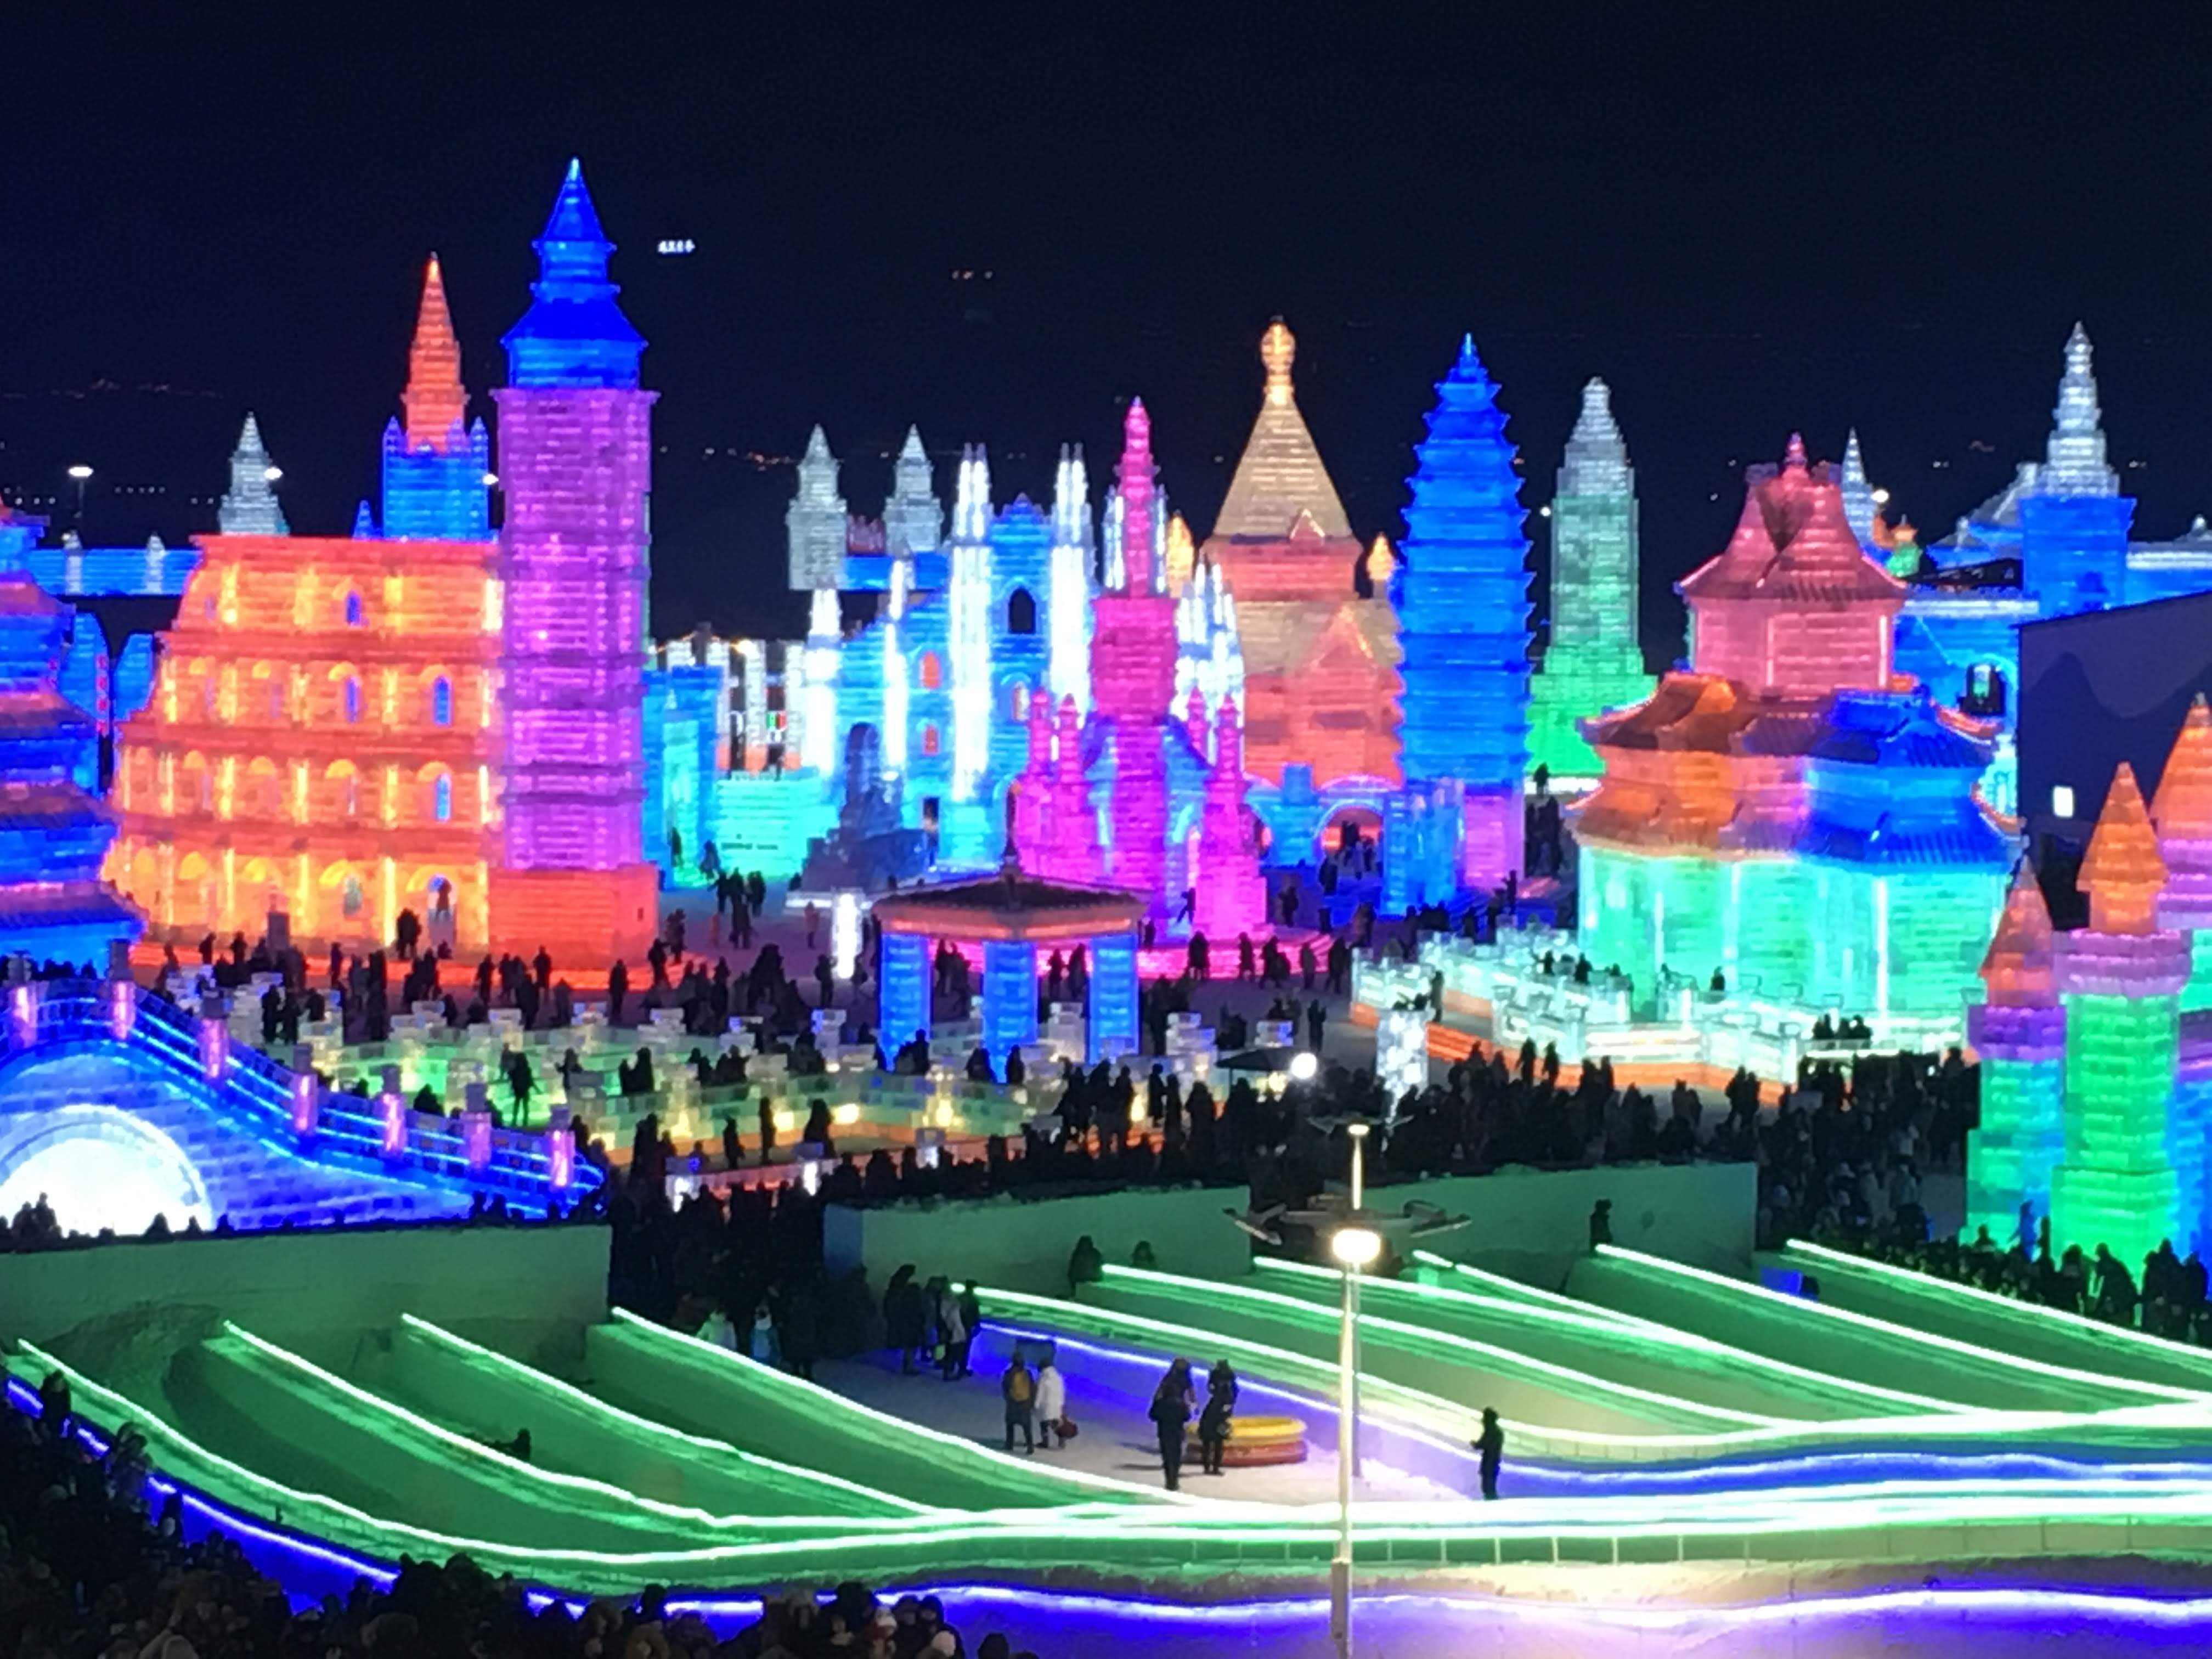 China Harbin Ice and Snow World | Roger Wing